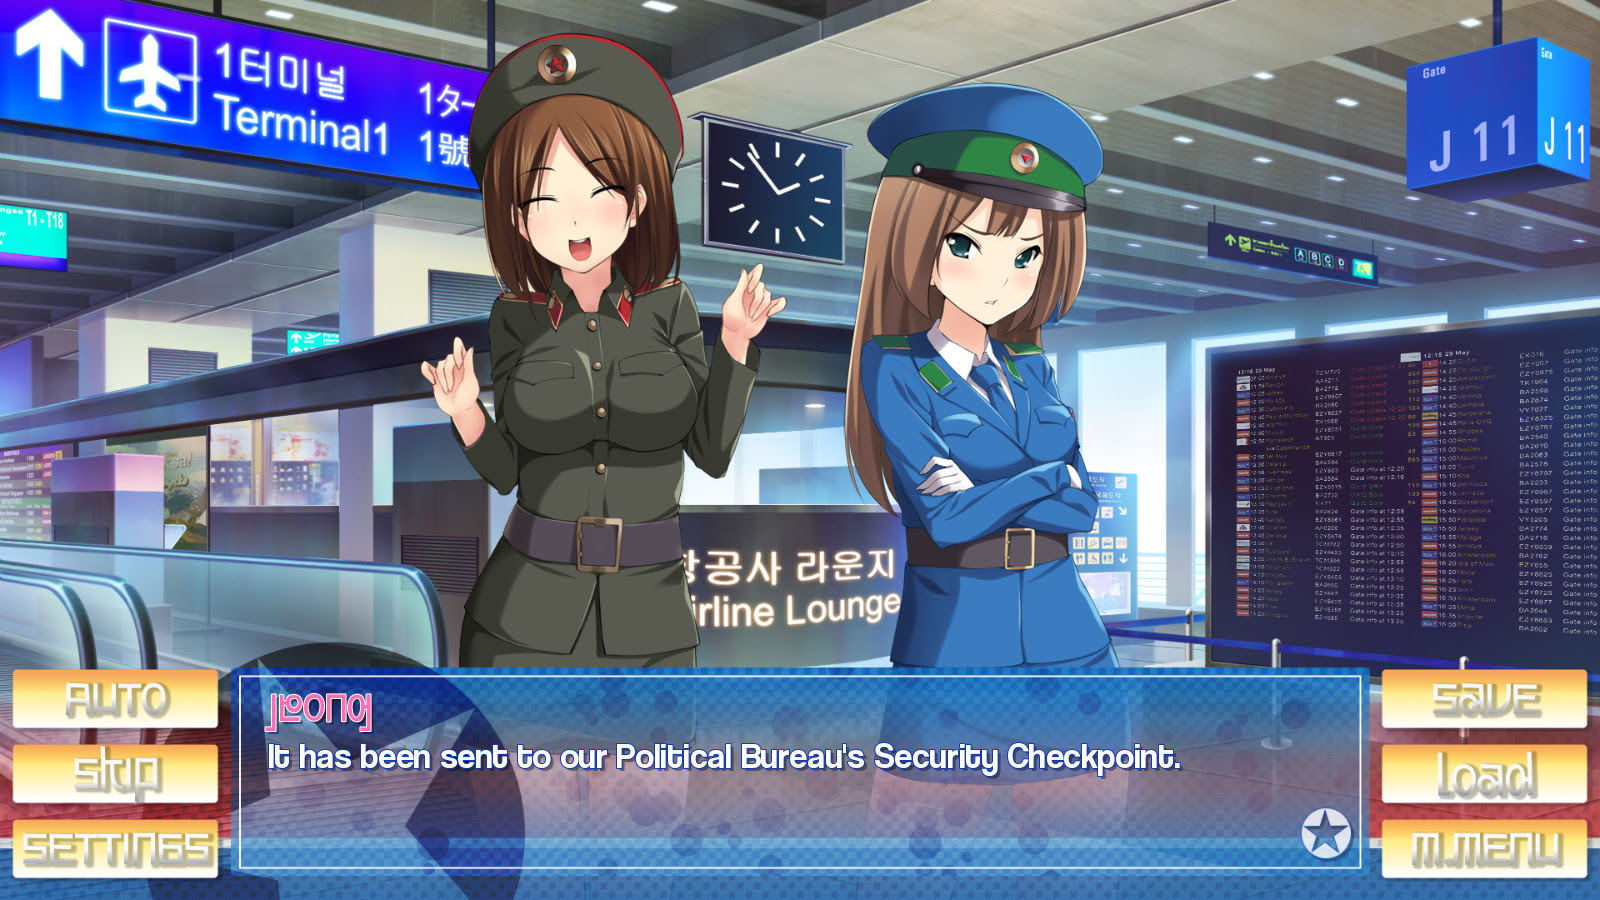 Seduce a North Korean officer in DPRK anime dating game screenshot